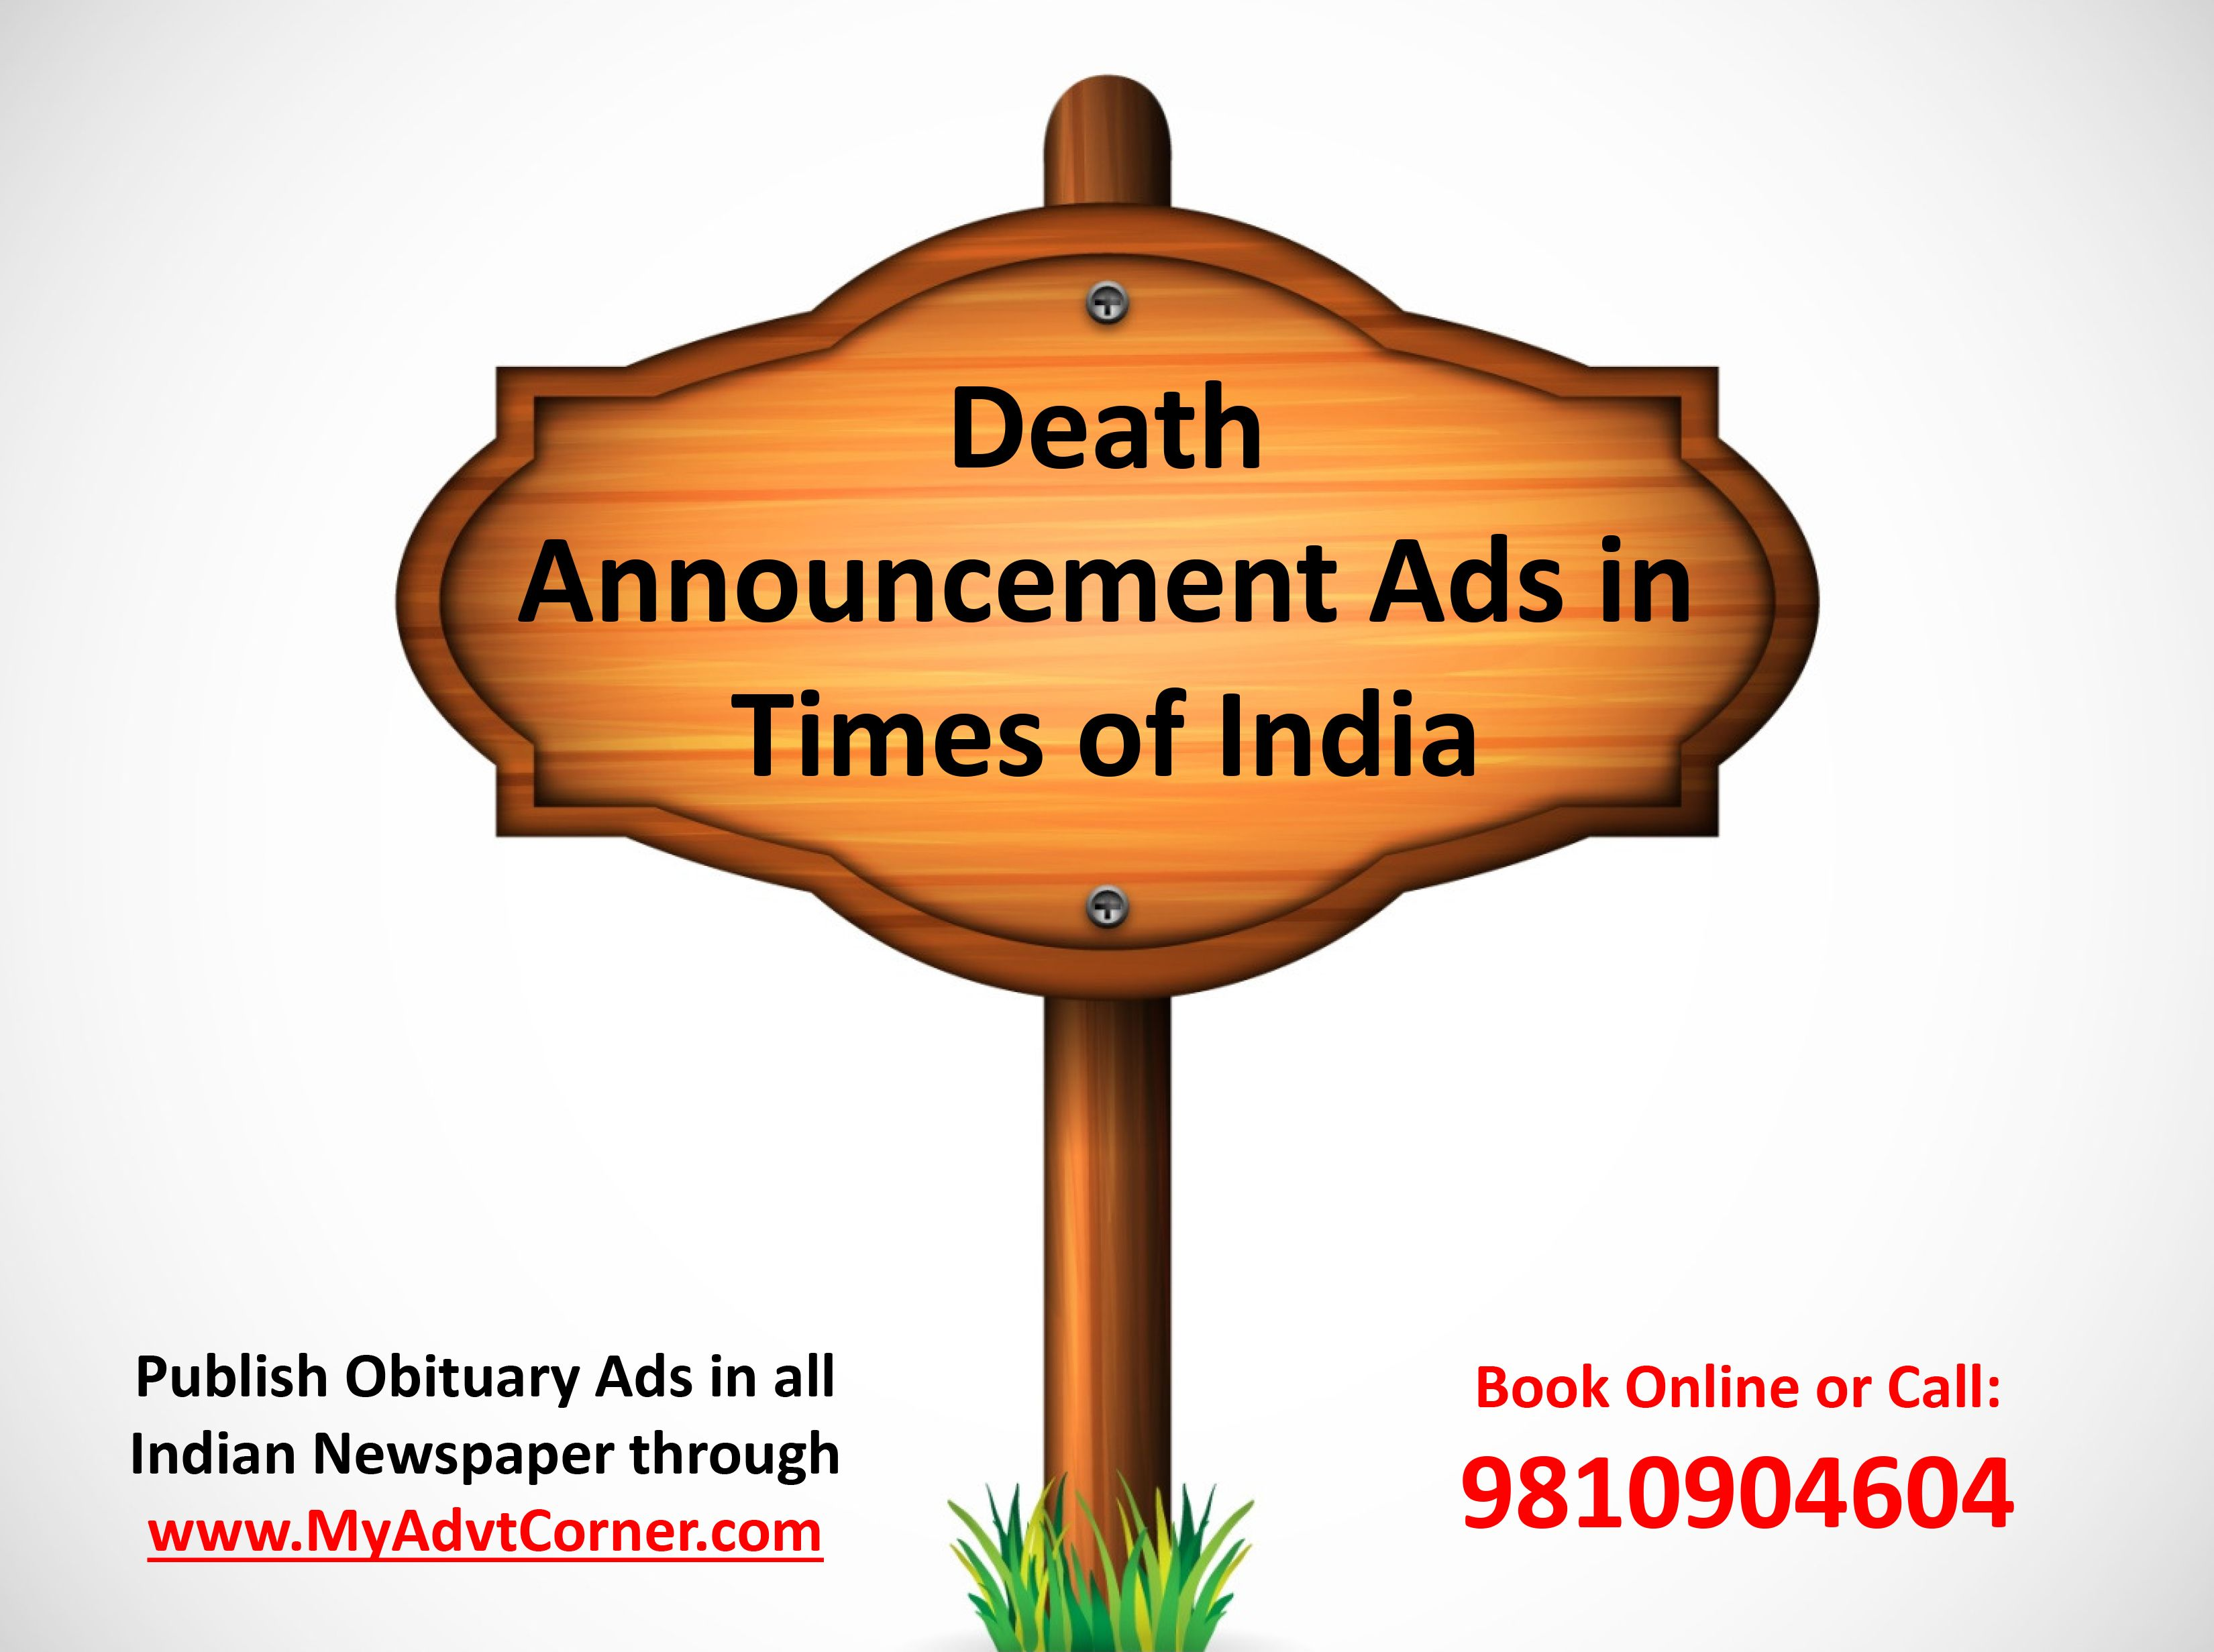 Death Announcement Ads in Times of India